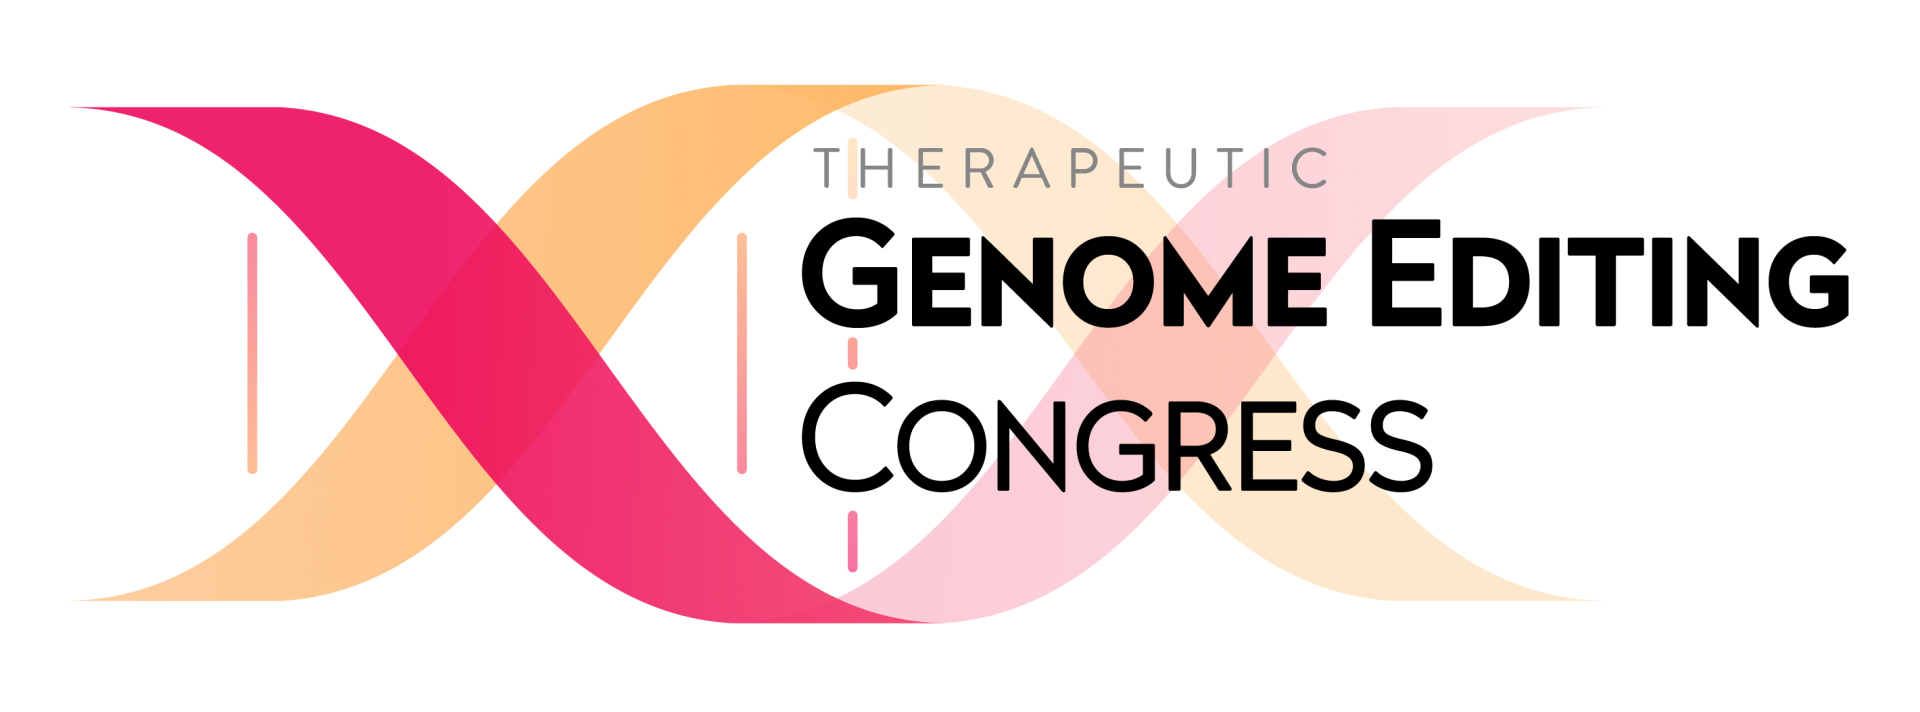 Therapeutic Genome Editing Congress